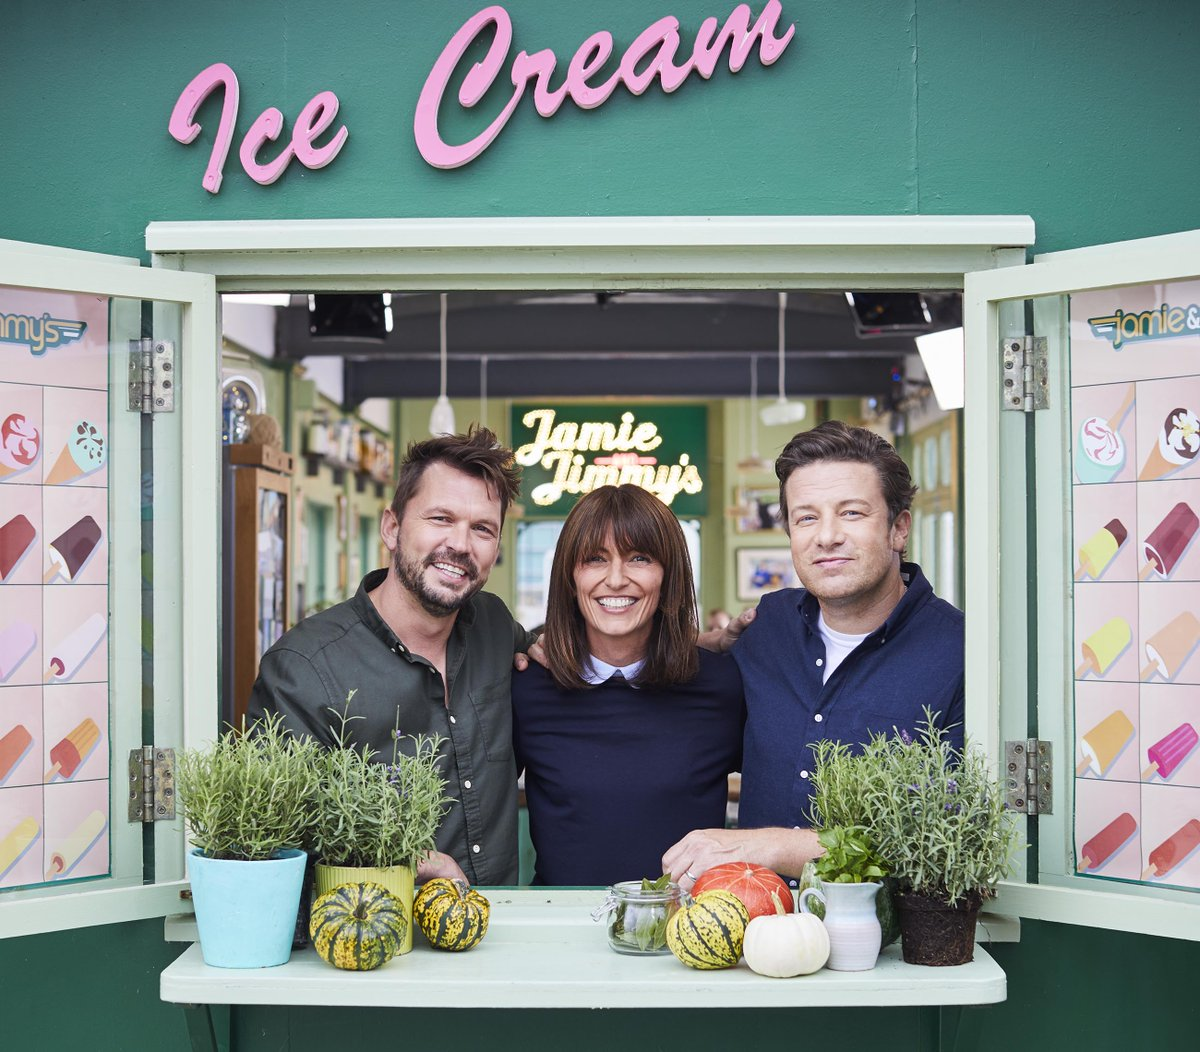 RT @Channel4: Tonight at 8pm @ThisIsDavina joins @JamieOliver and @jimmysfarm on #FridayNightFeast https://t.co/NOBM2XmMgY